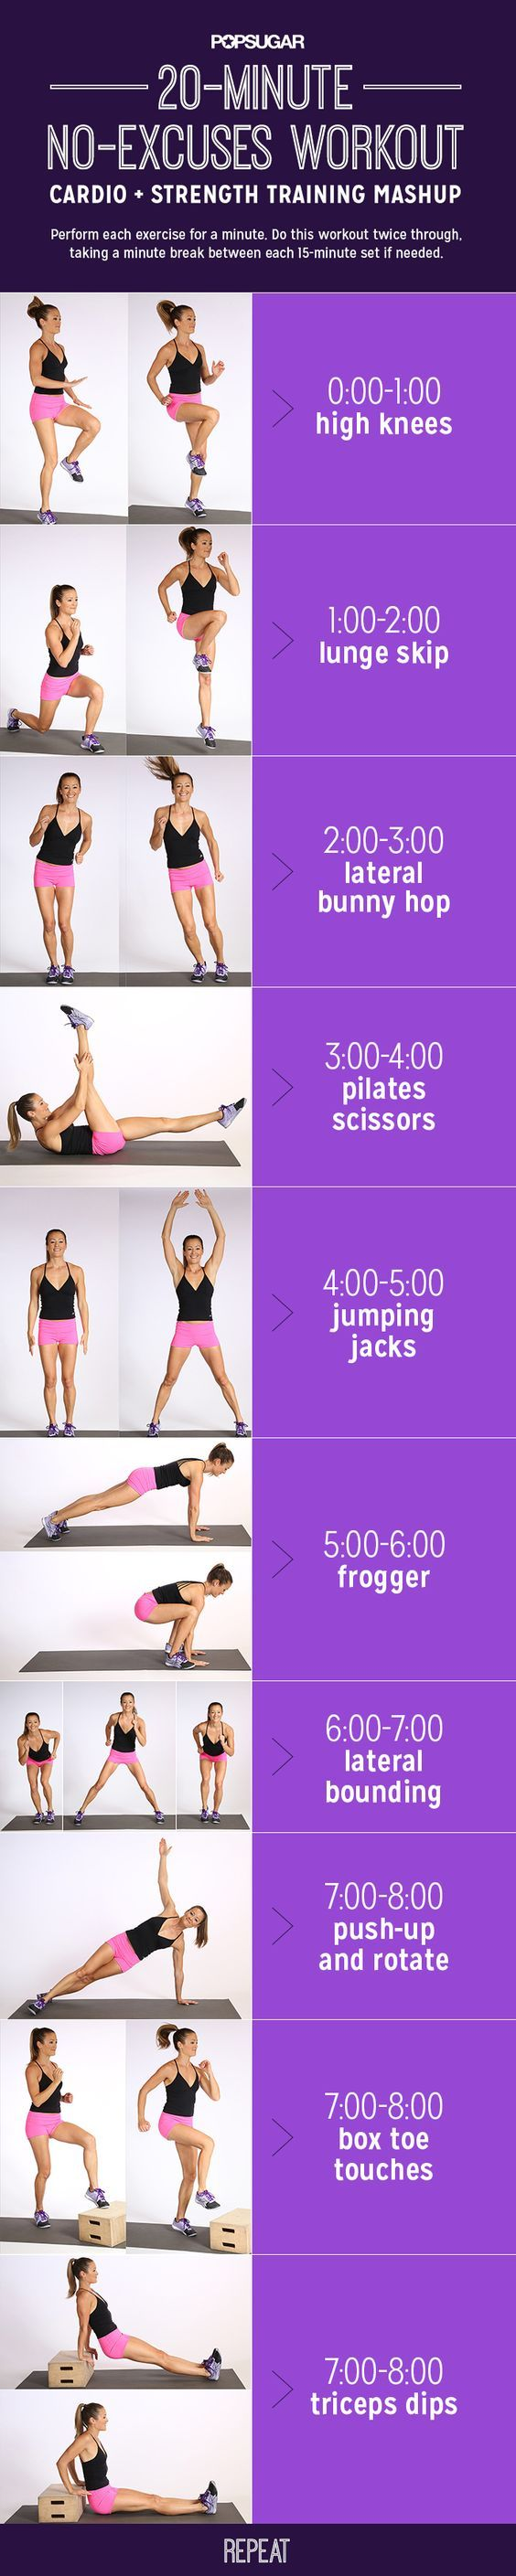 This quick 20-minute workout will get your heart rate up and build some muscle — a metabolism boosting win win!: